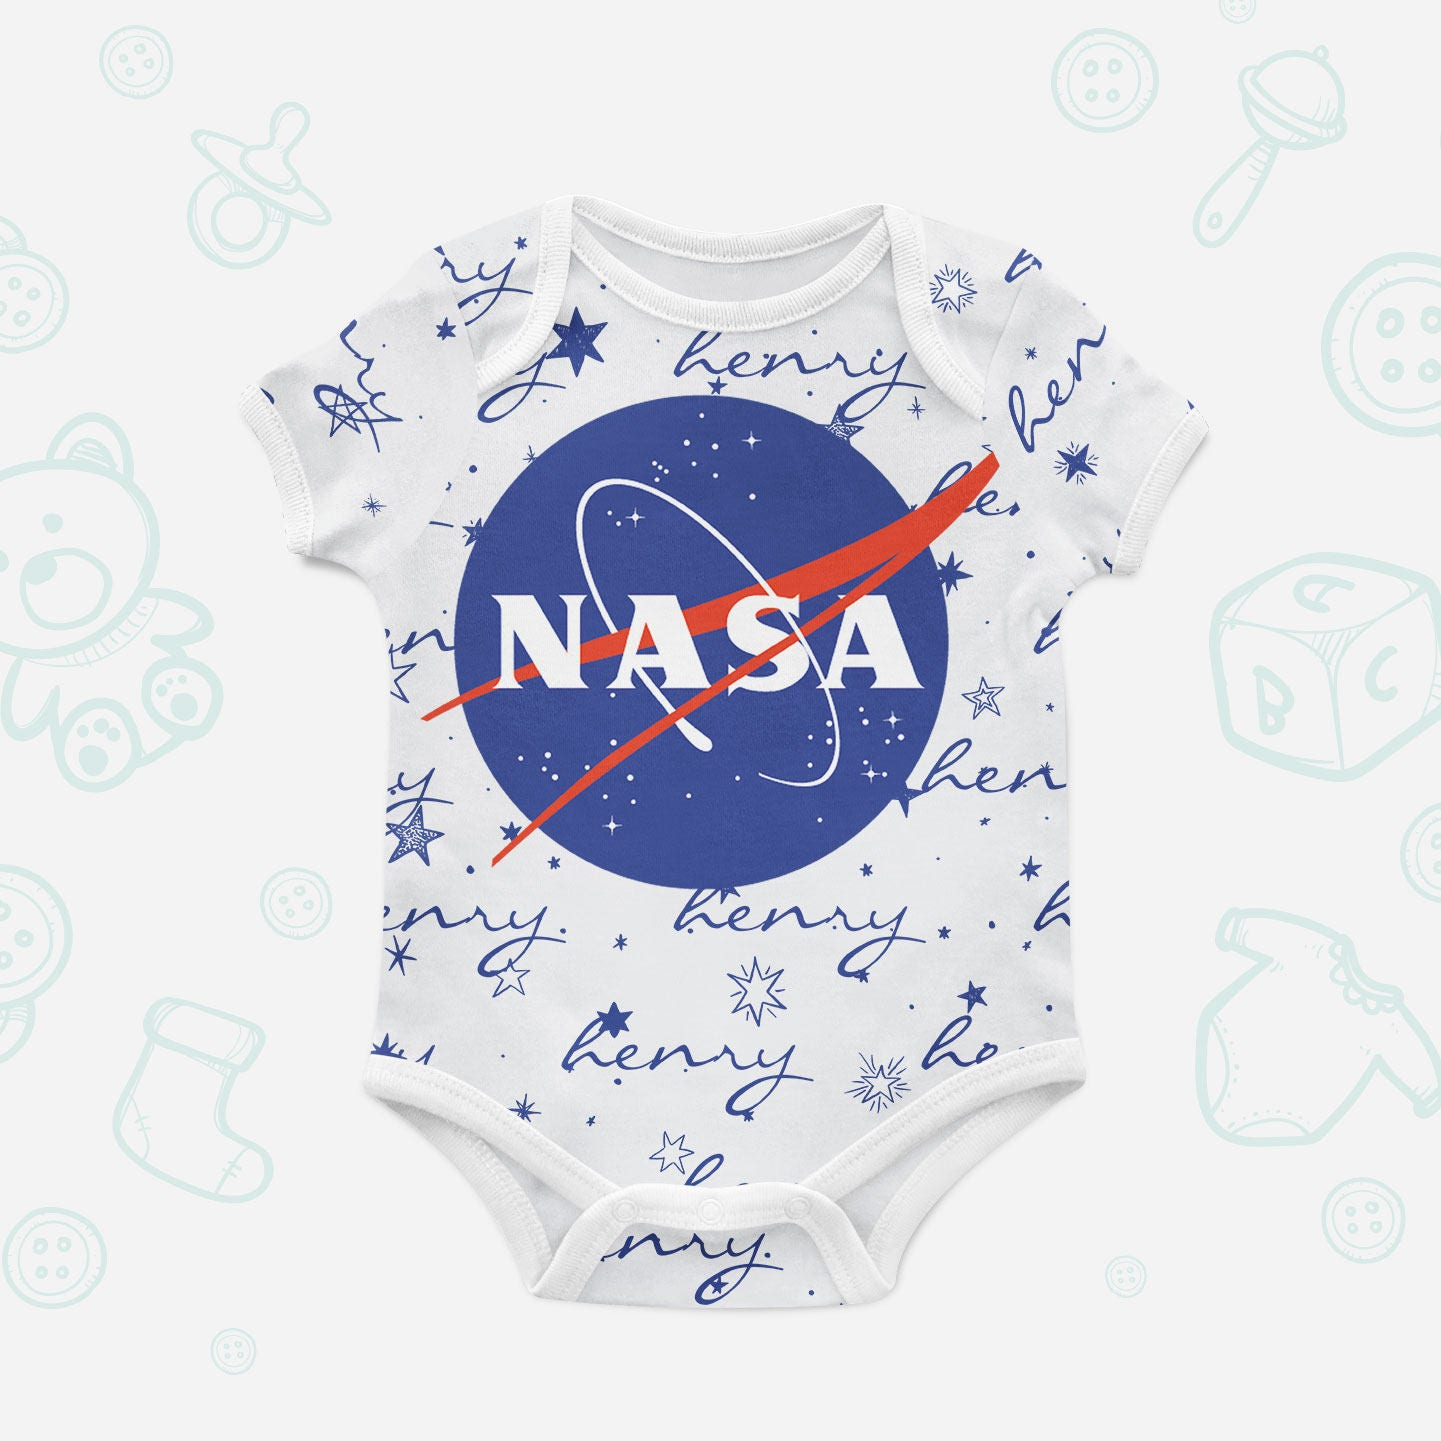 Dry Baby clothing is the first of it's kind and solves a problem all parents and caregivers face mess! From spills to spit up, drools and accidents our % cotton, fluorocarbon free clothing, developed by a former NASA scientist makes looking after your little one that little bit easier.